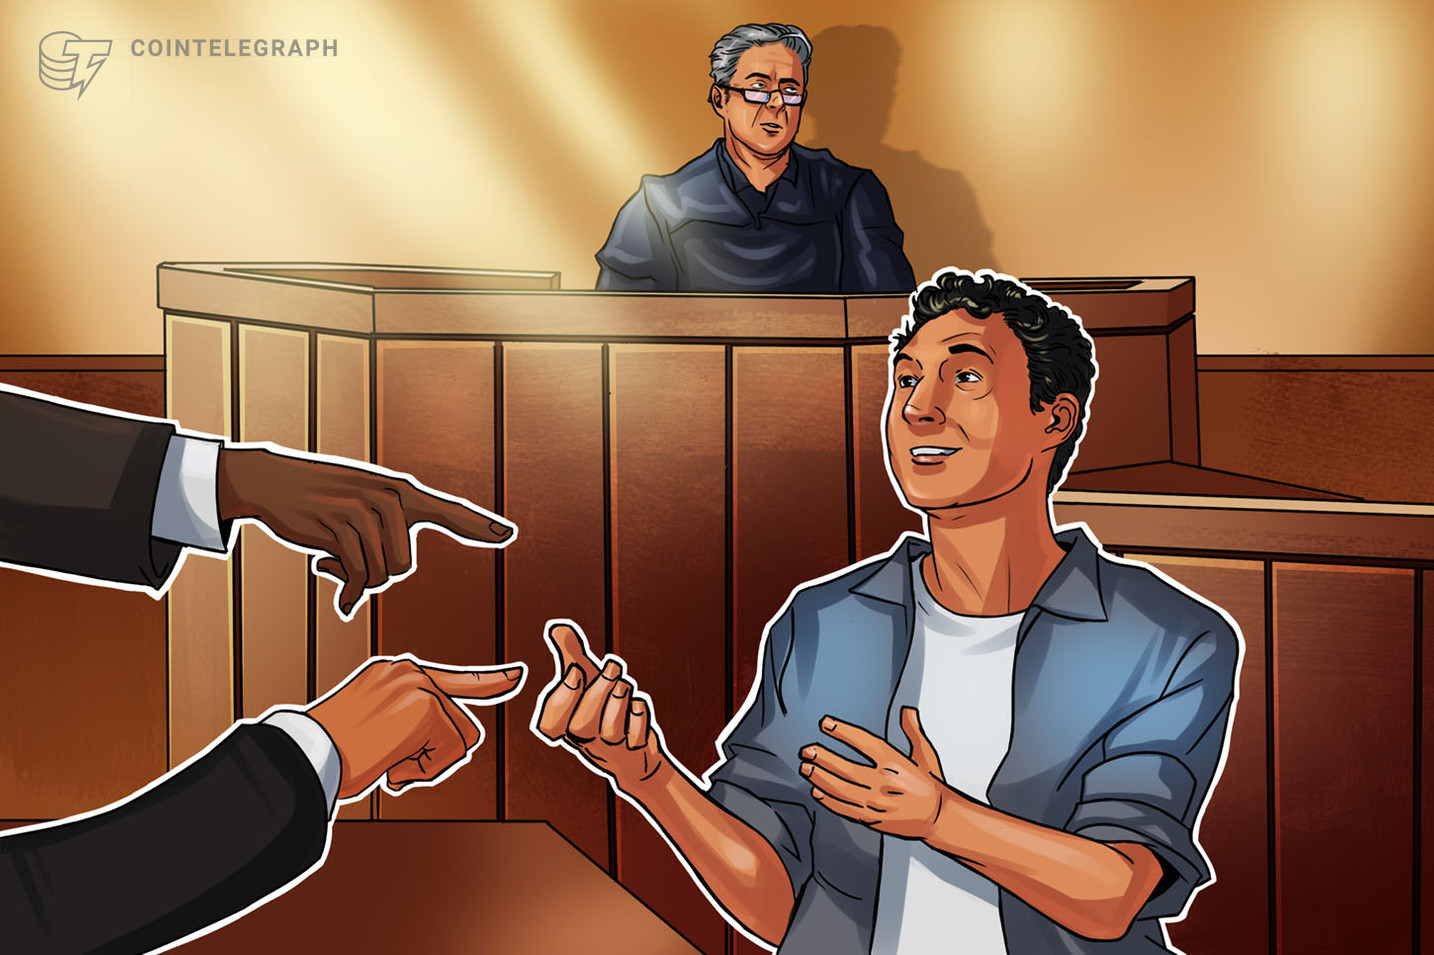 Mt. Gox Vulnerability Covered Up by Founder McCaleb, Lawsuit Alleges